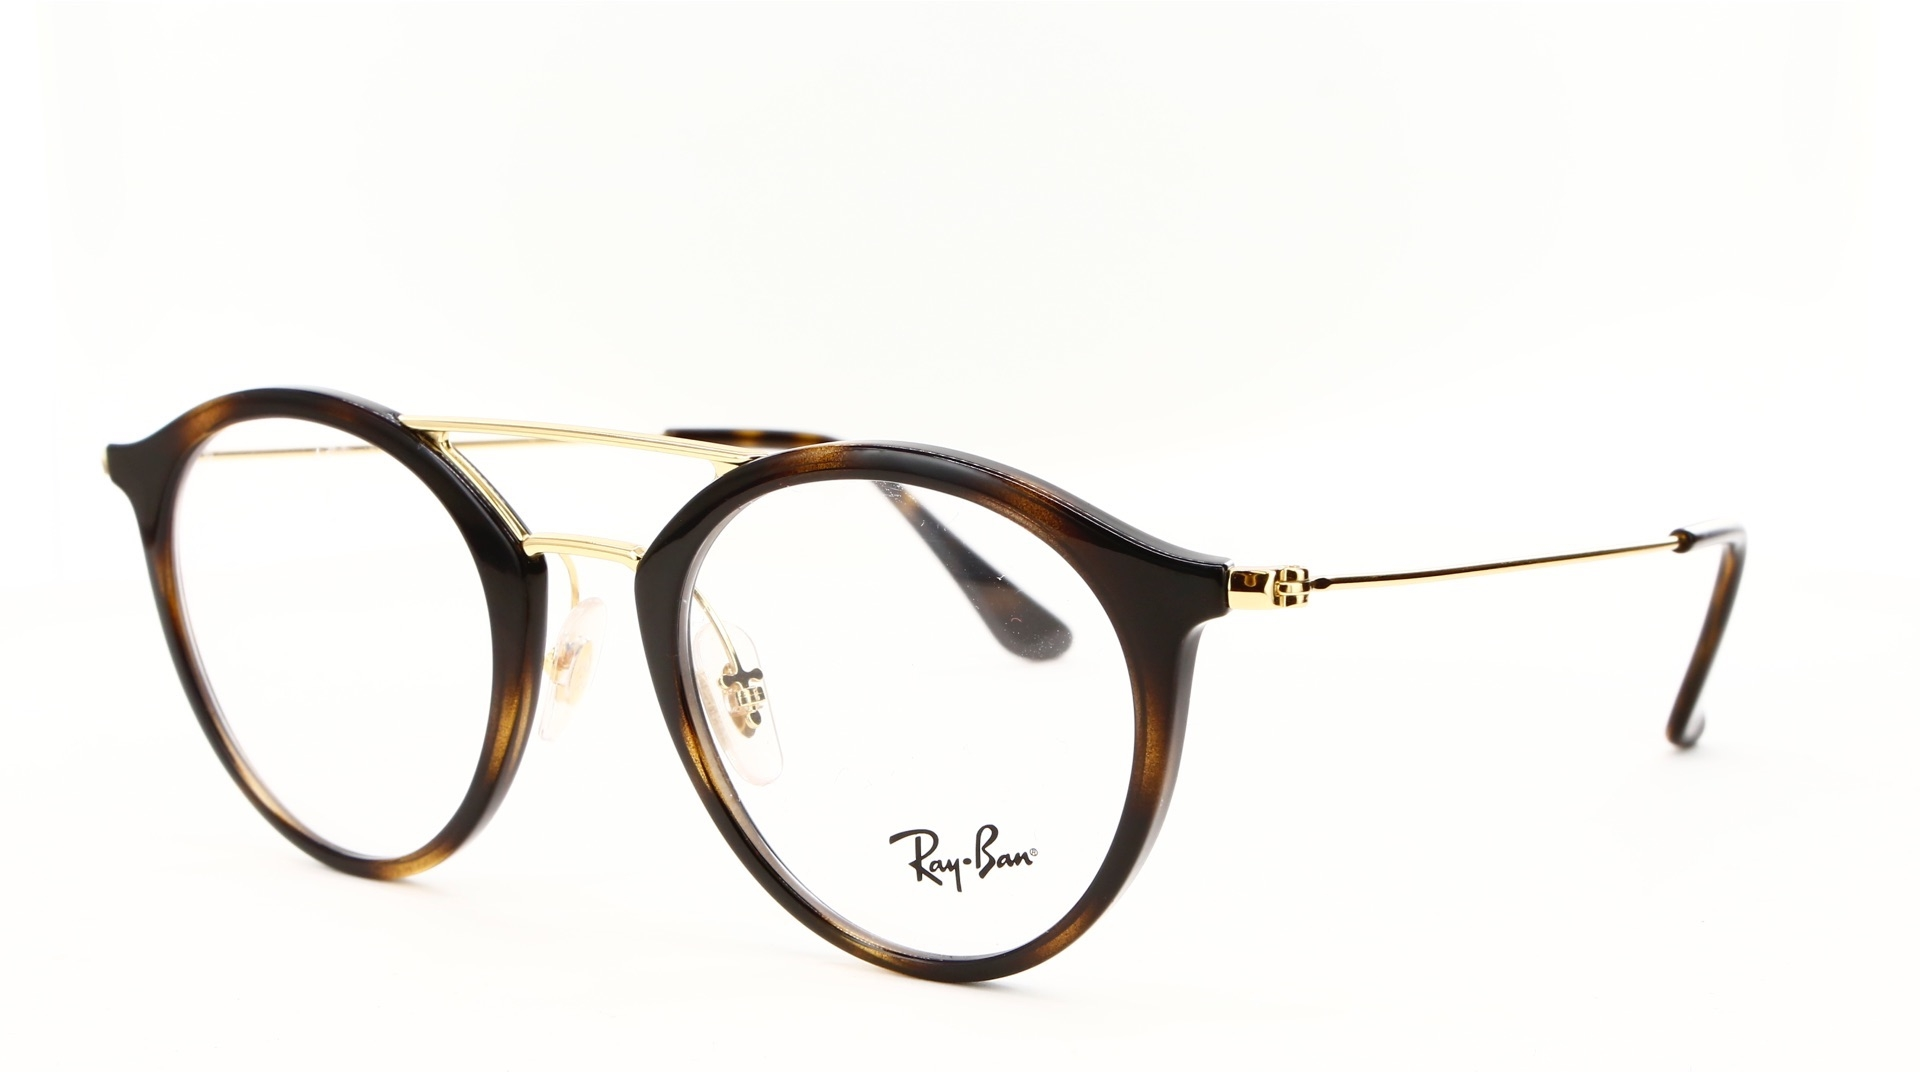 Ray-Ban - ref: 76391